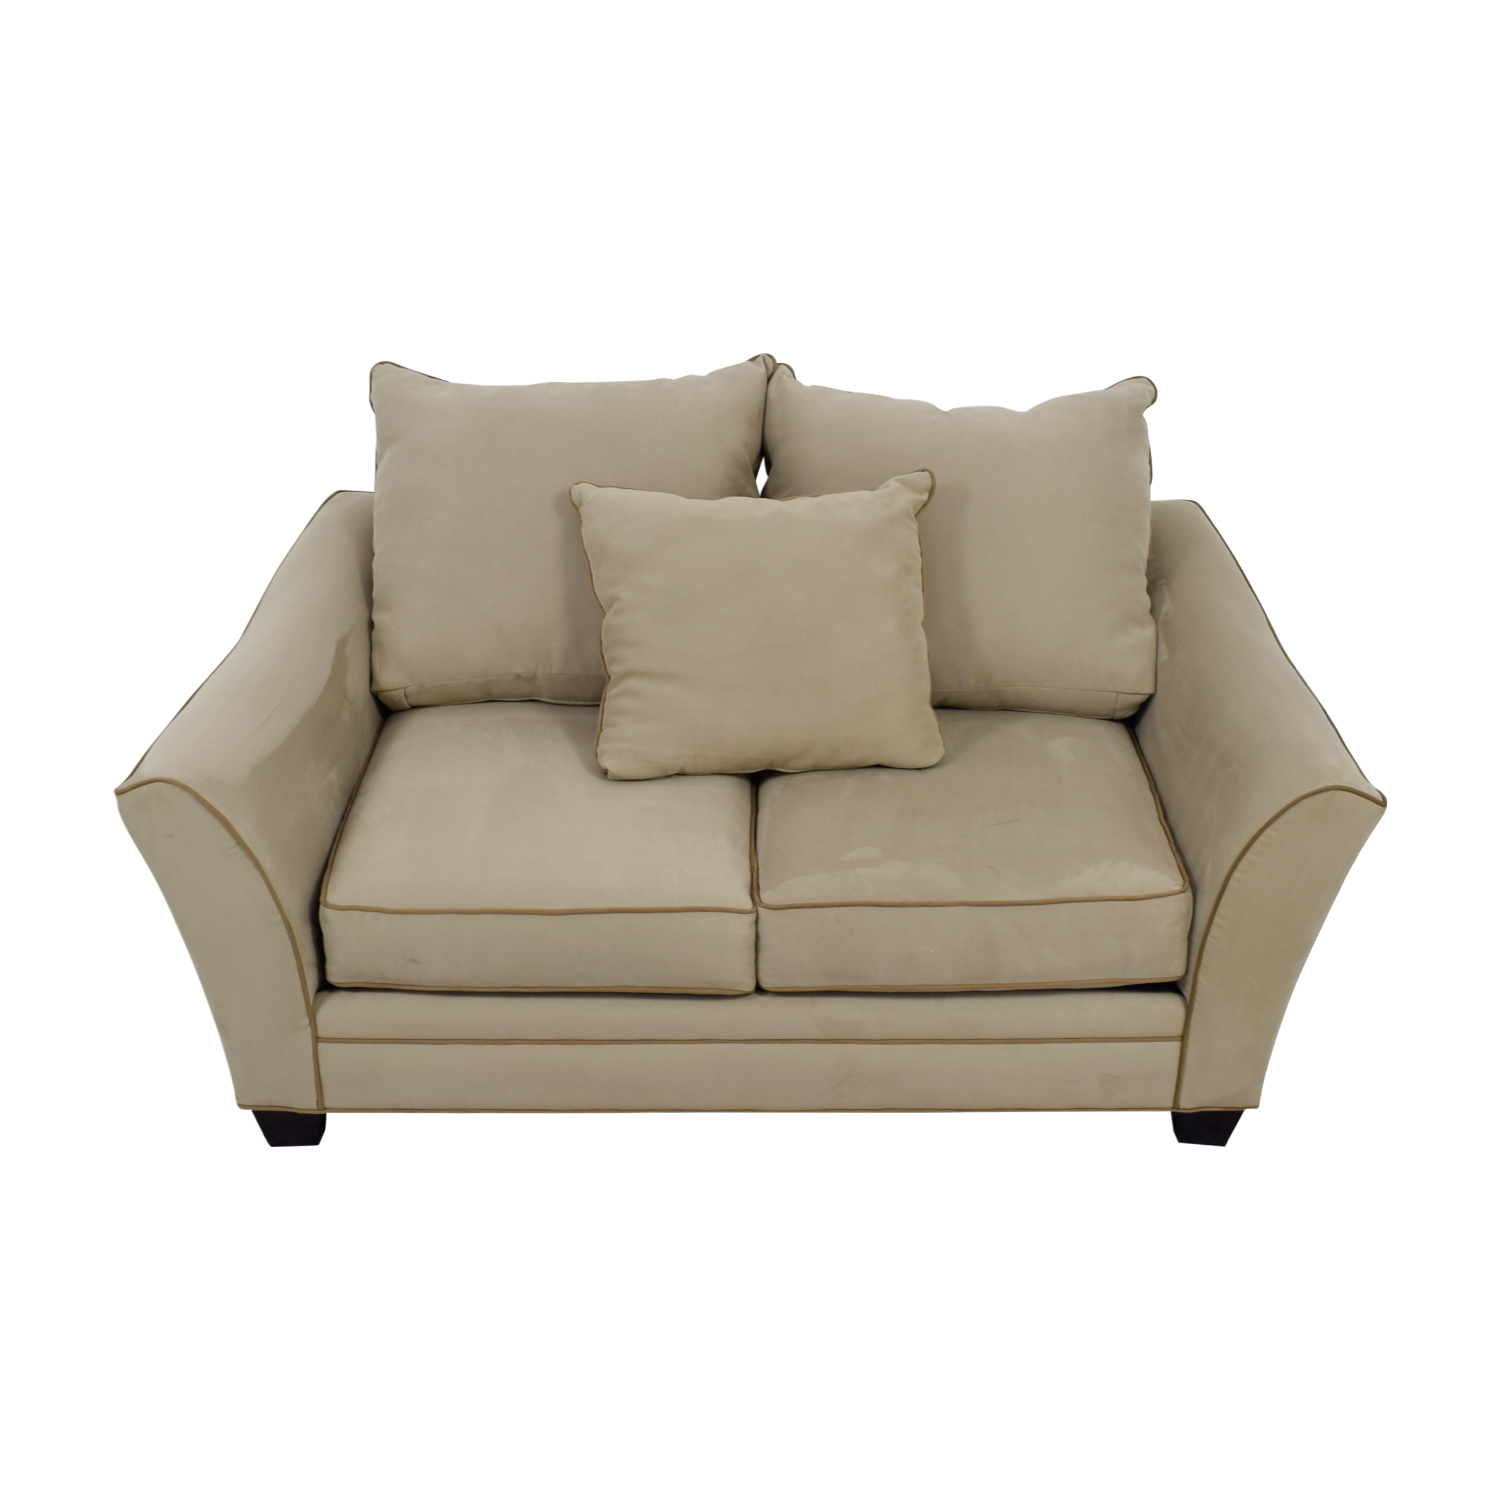 Raymour & Flanigan Raymour & Flanigan Grey and Beige Two-Cushion Loveseat Sofas